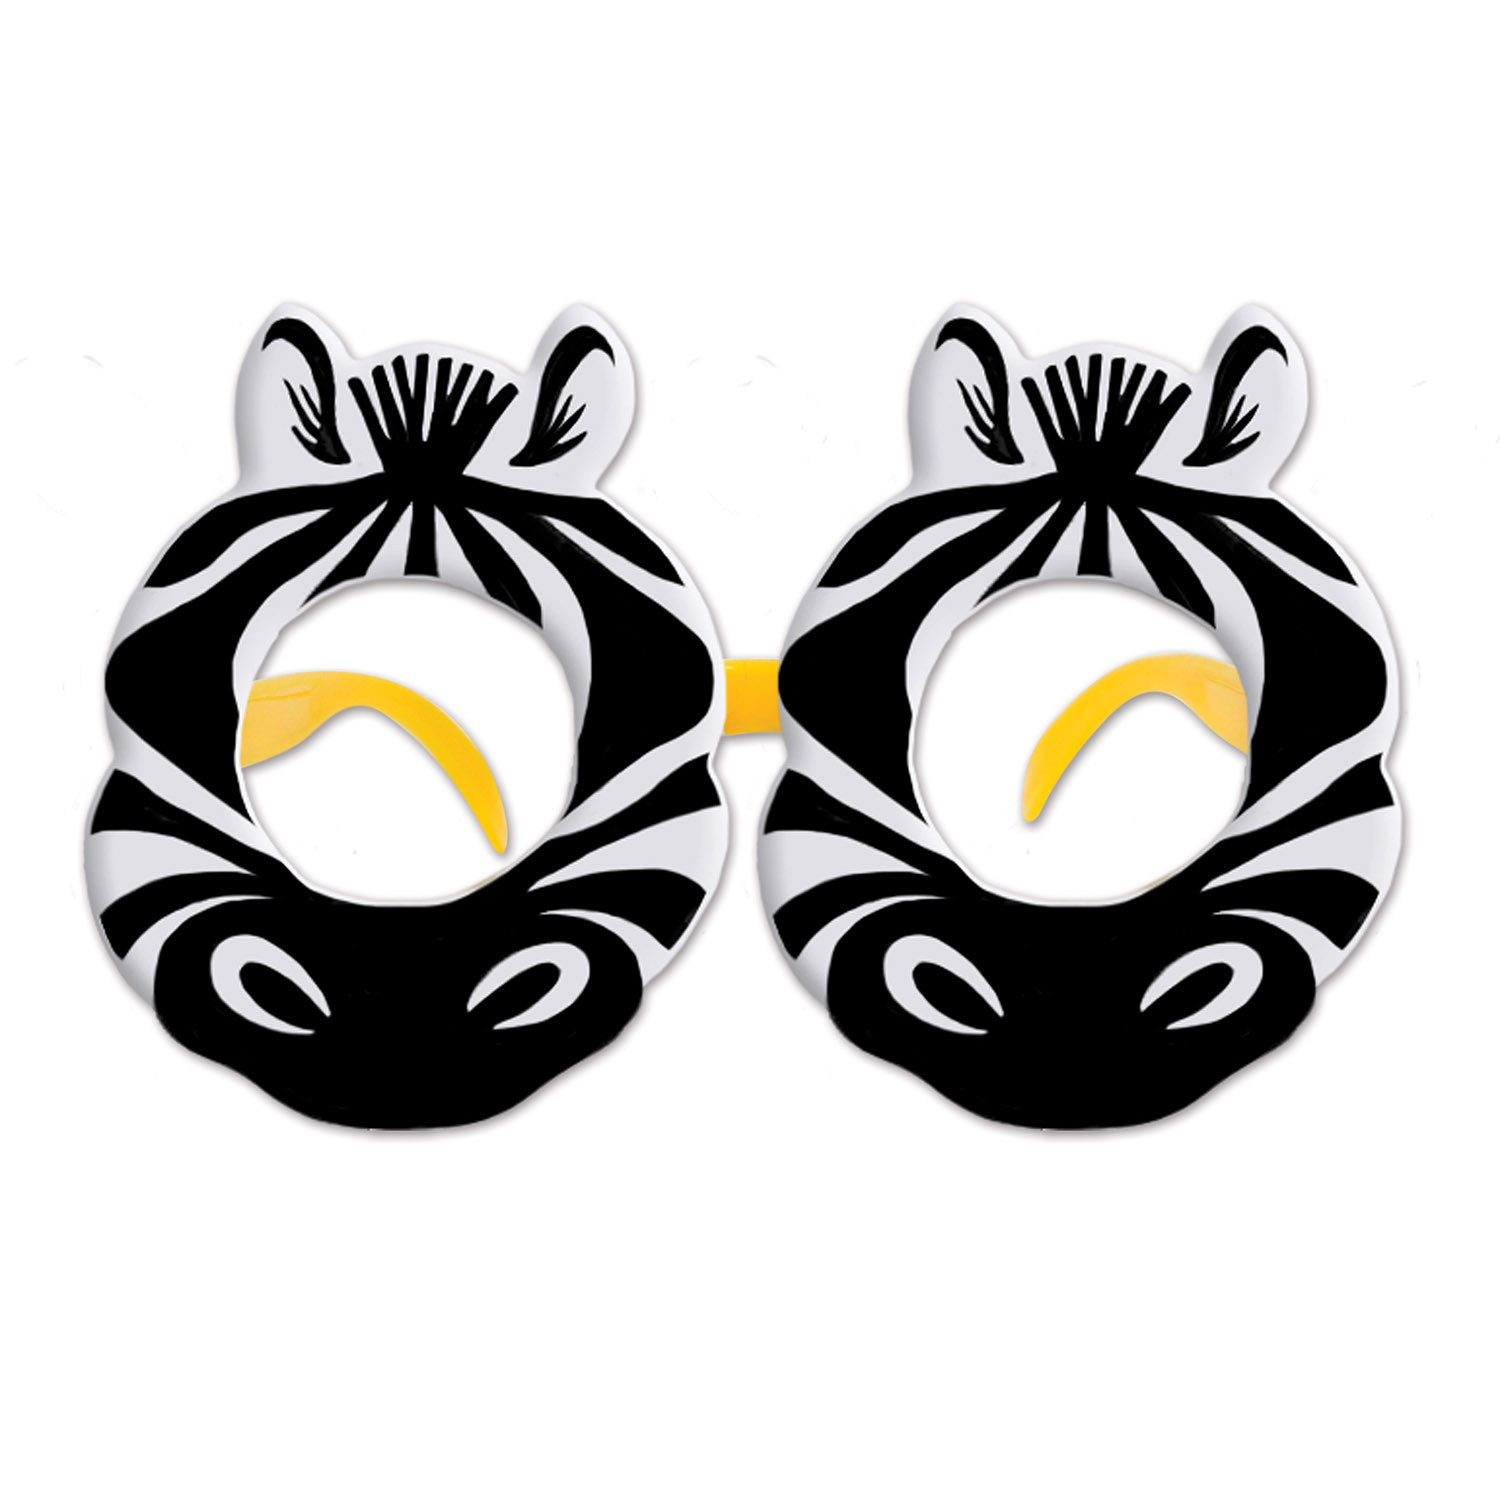 Zebra Glasses (Pack of 12) Zebra Glasses, party favor, luau, new years eve, wholesale, inexpensive, bulk